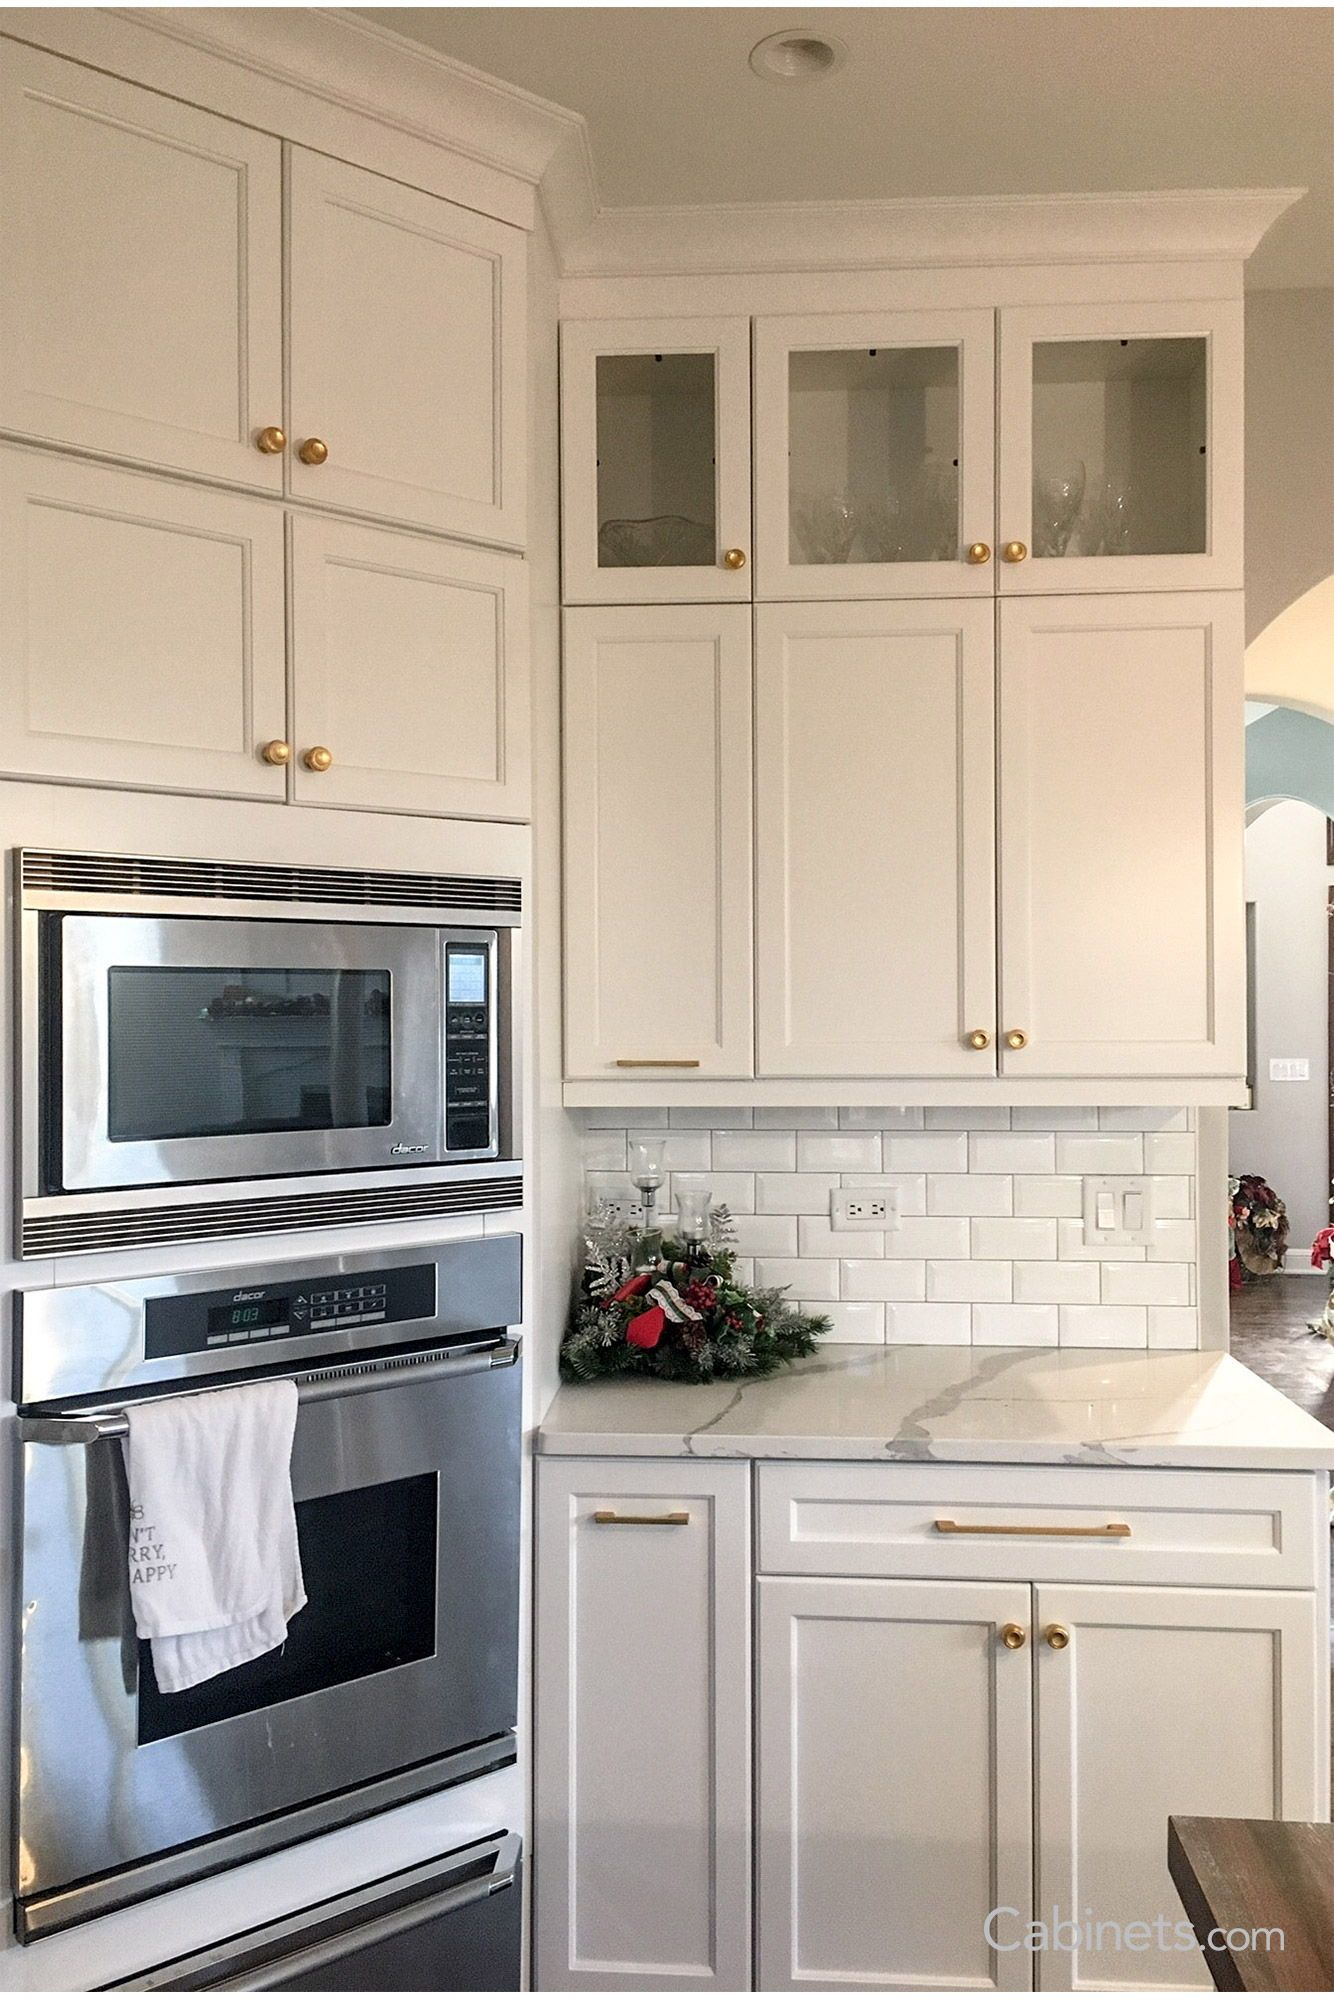 We Don T Think That Bright White Cabinets Will Ever Go Out Of Style Bright White Cabinets Kitchen Remodel Inspiration Kitchen Cabinets Online Kitchen Cabinets